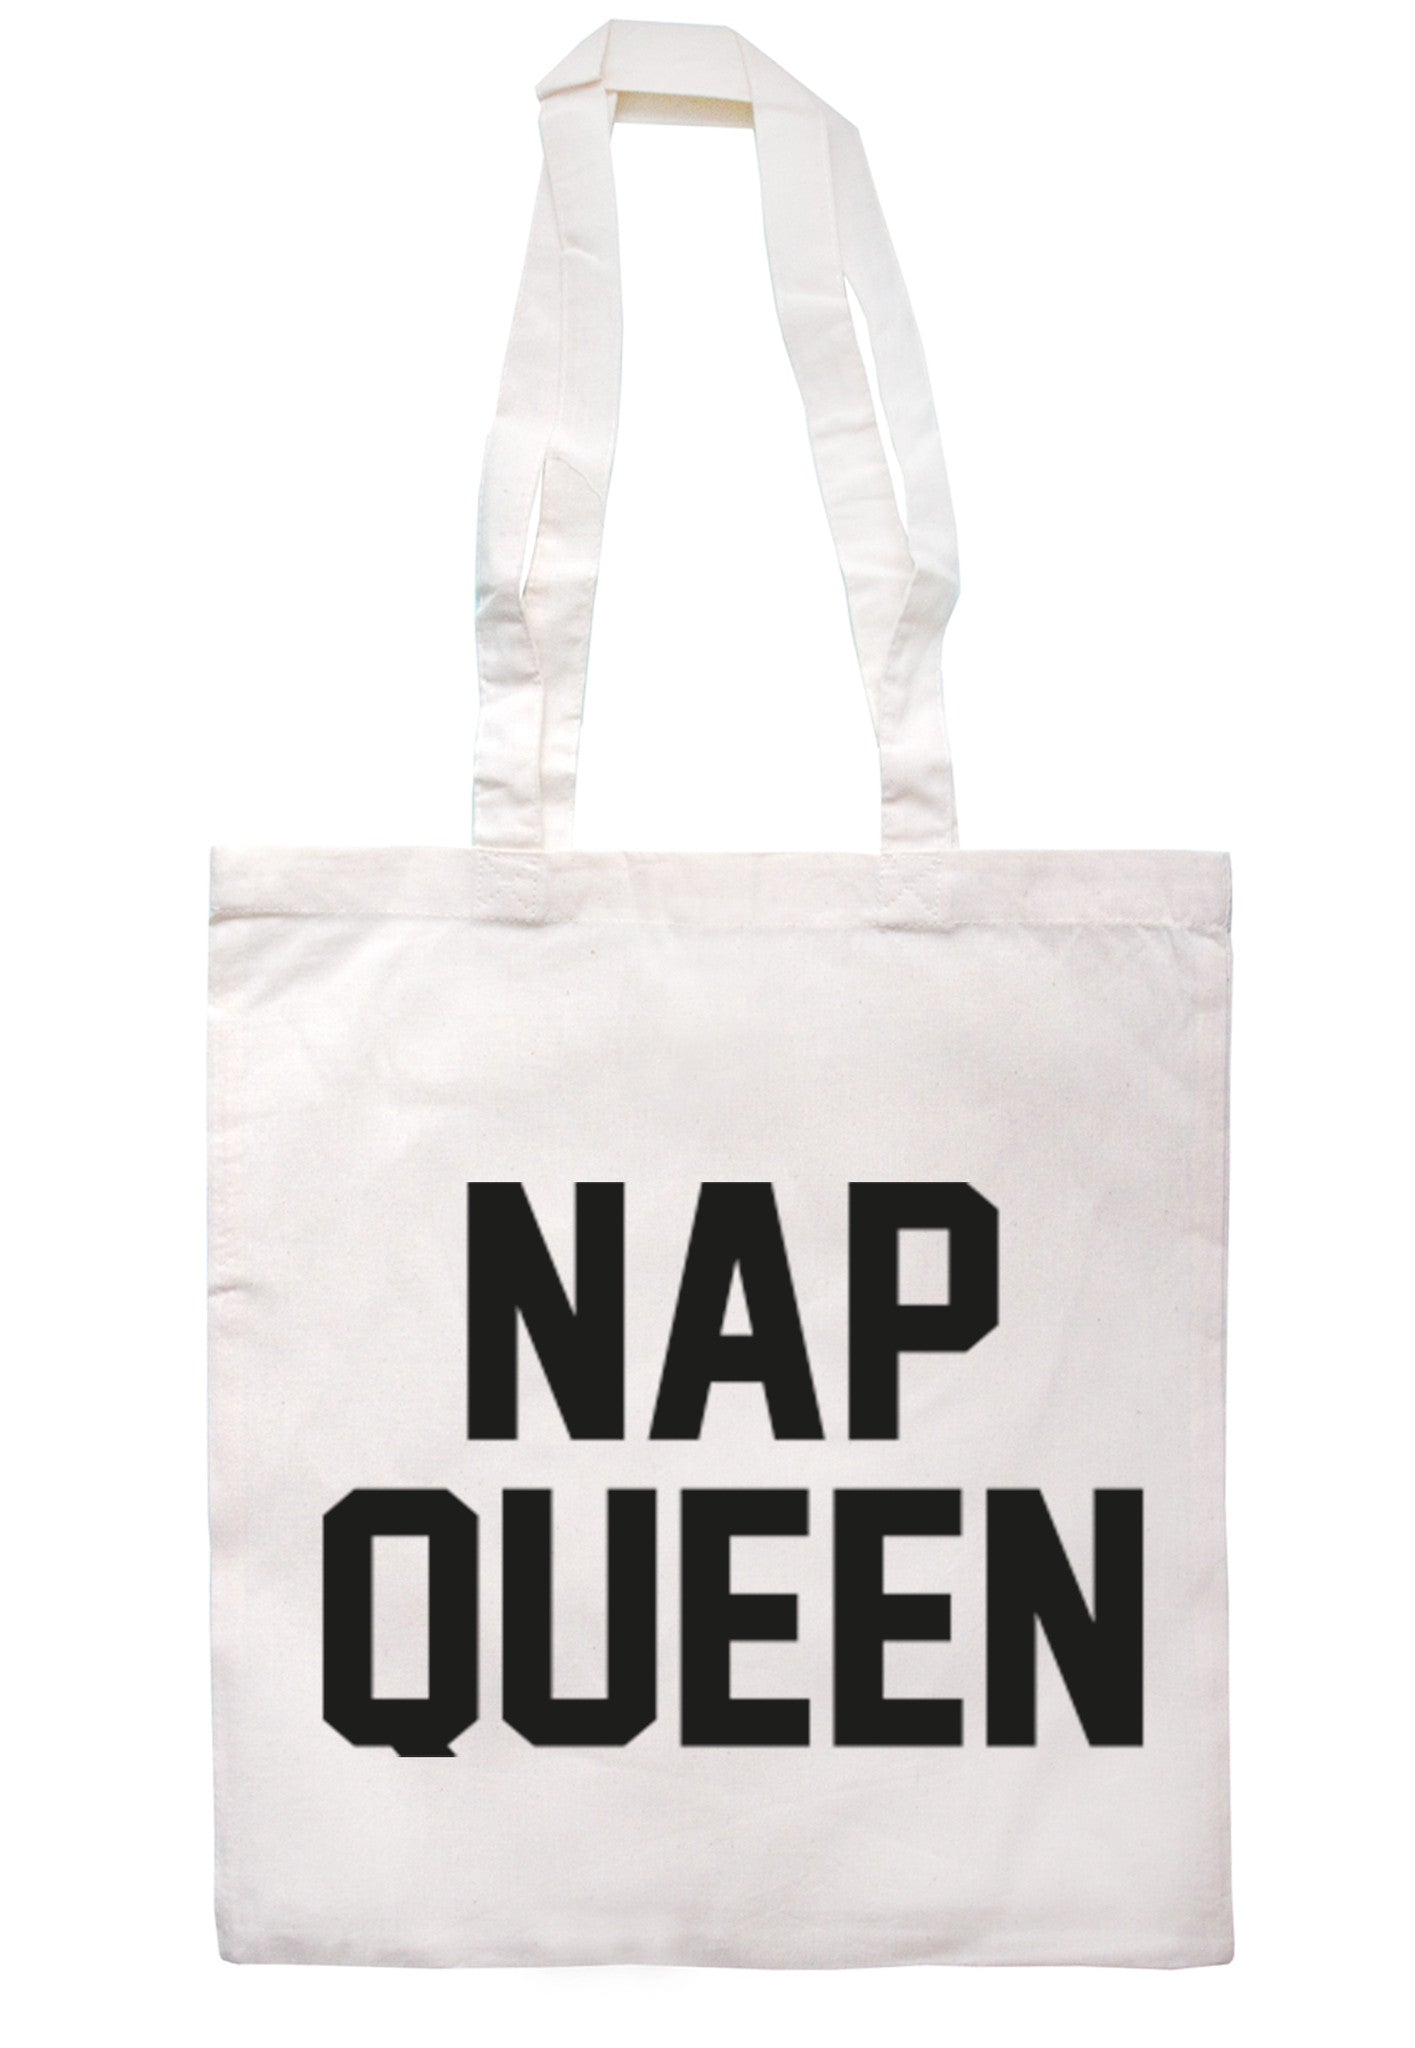 Nap Queen Tote Bag TB0097 - Illustrated Identity Ltd.